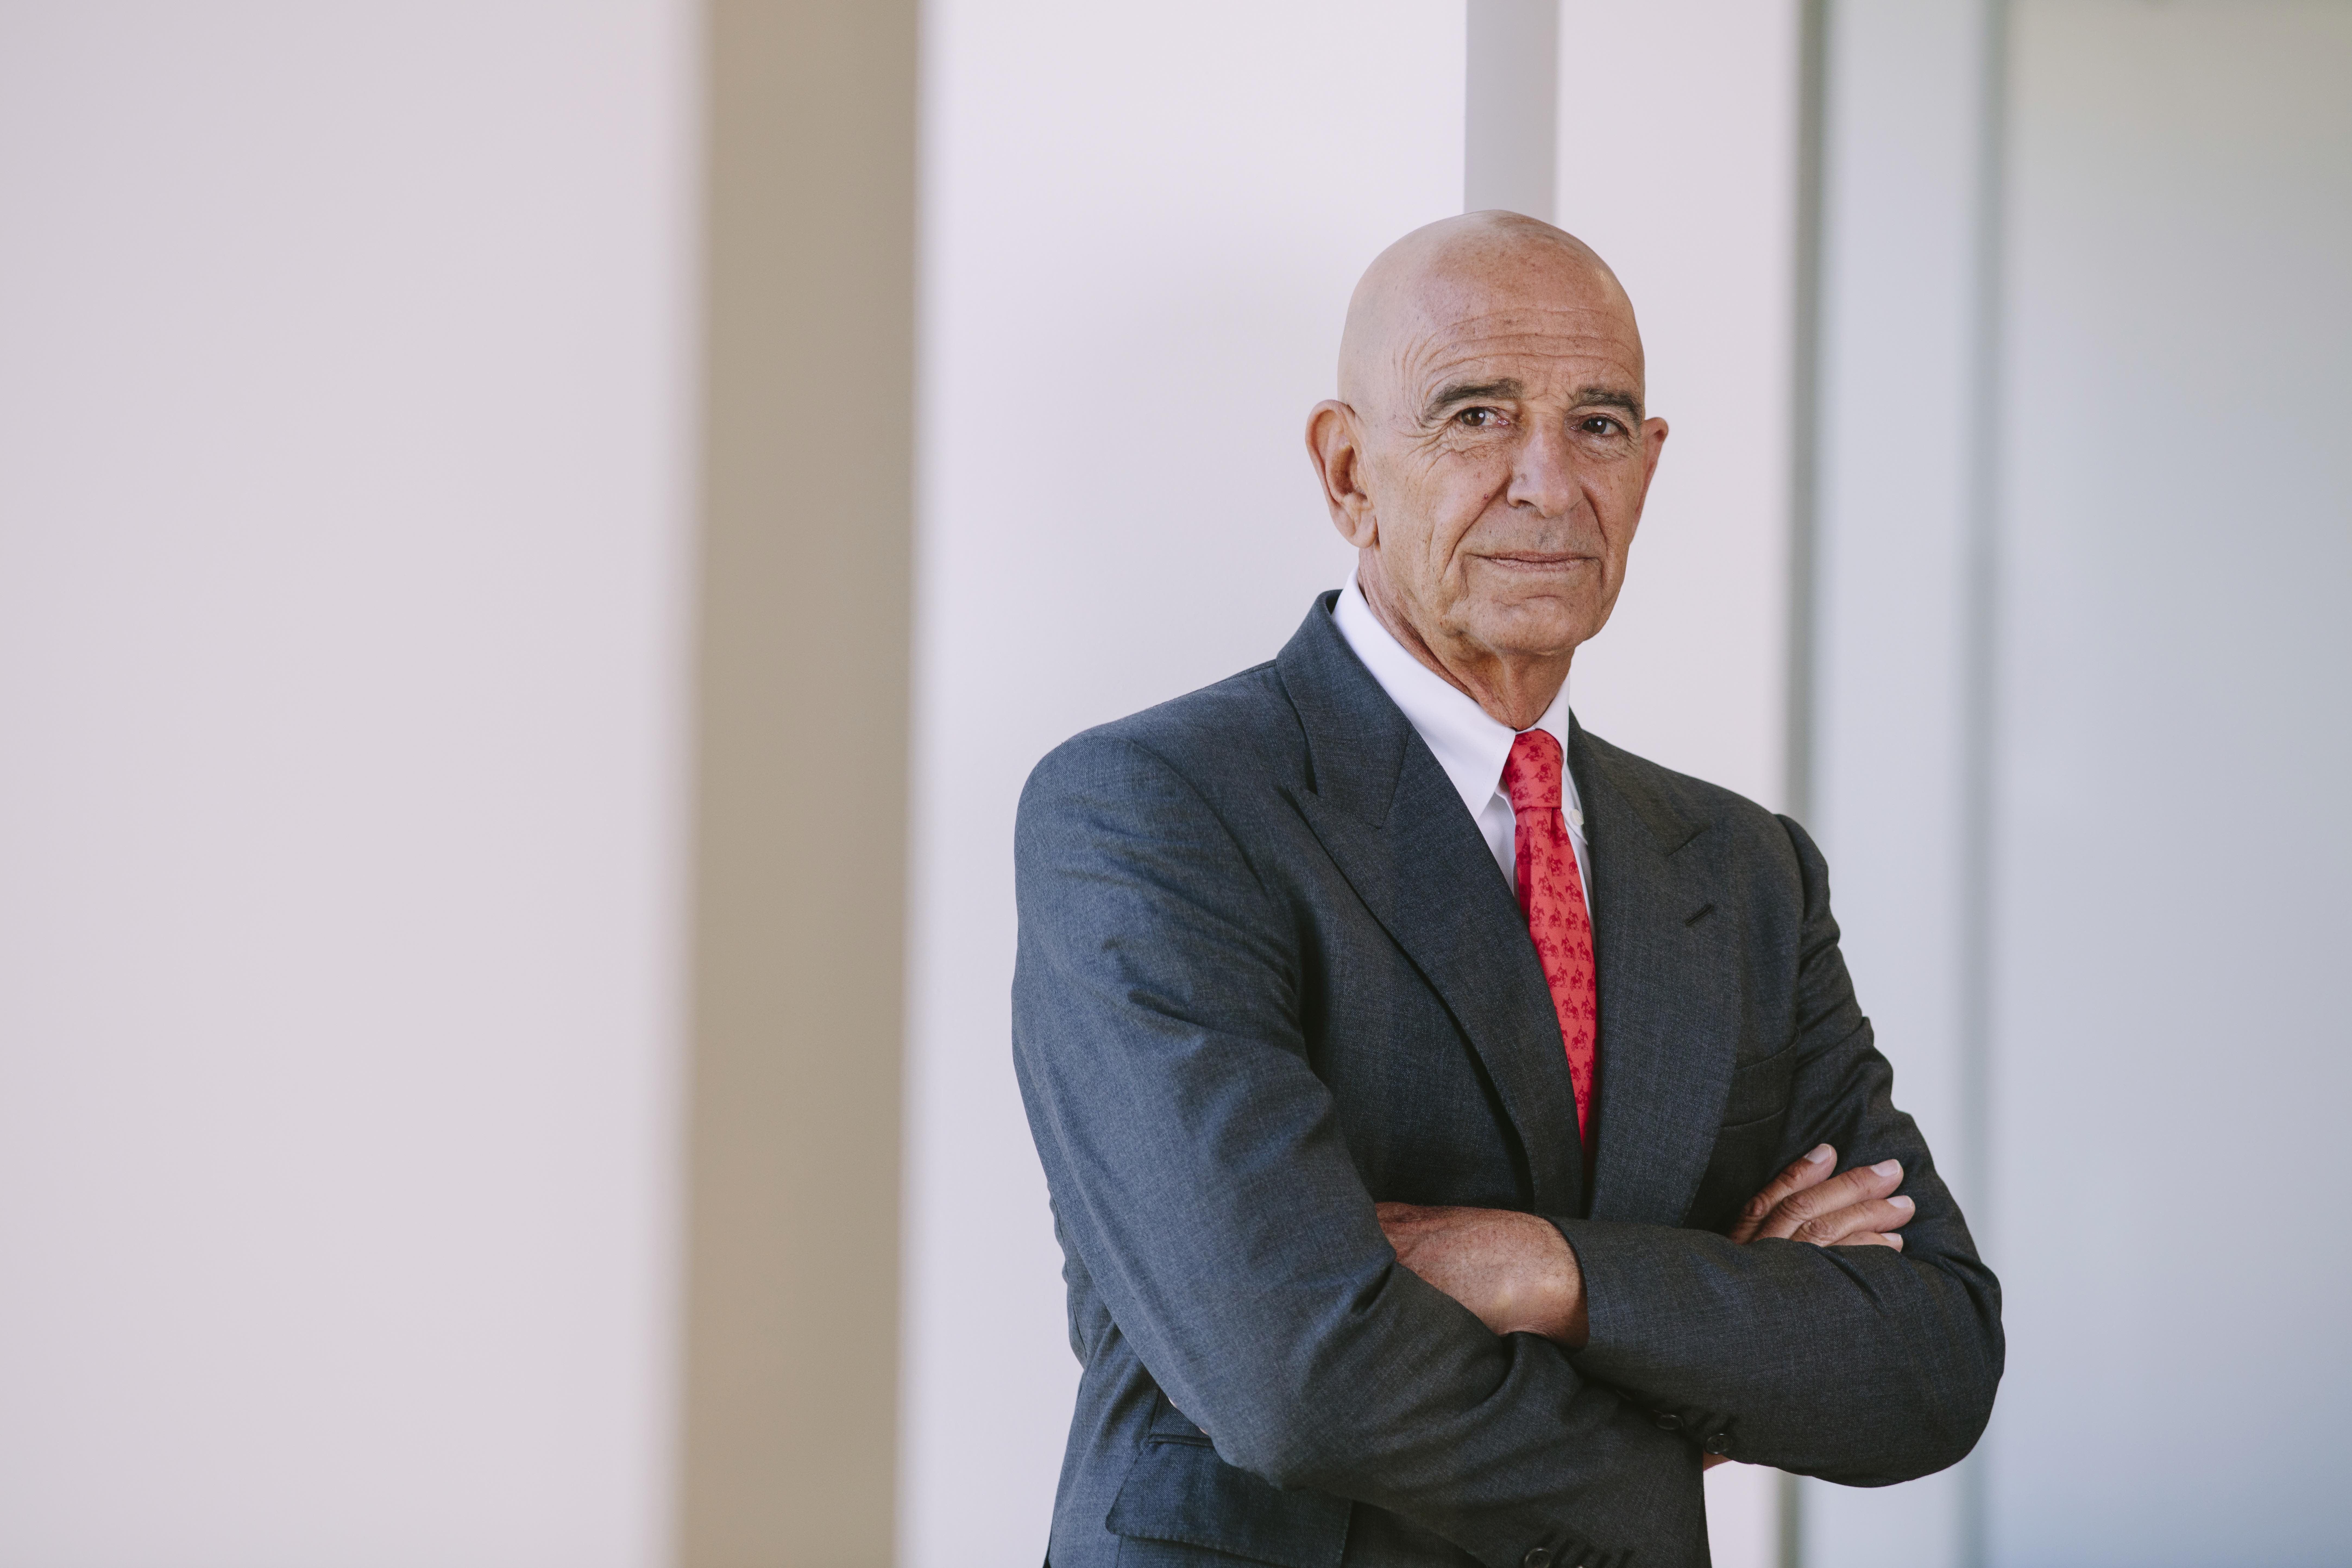 Thomas Barrack Facts 10 Things To Know About Trumps Friend